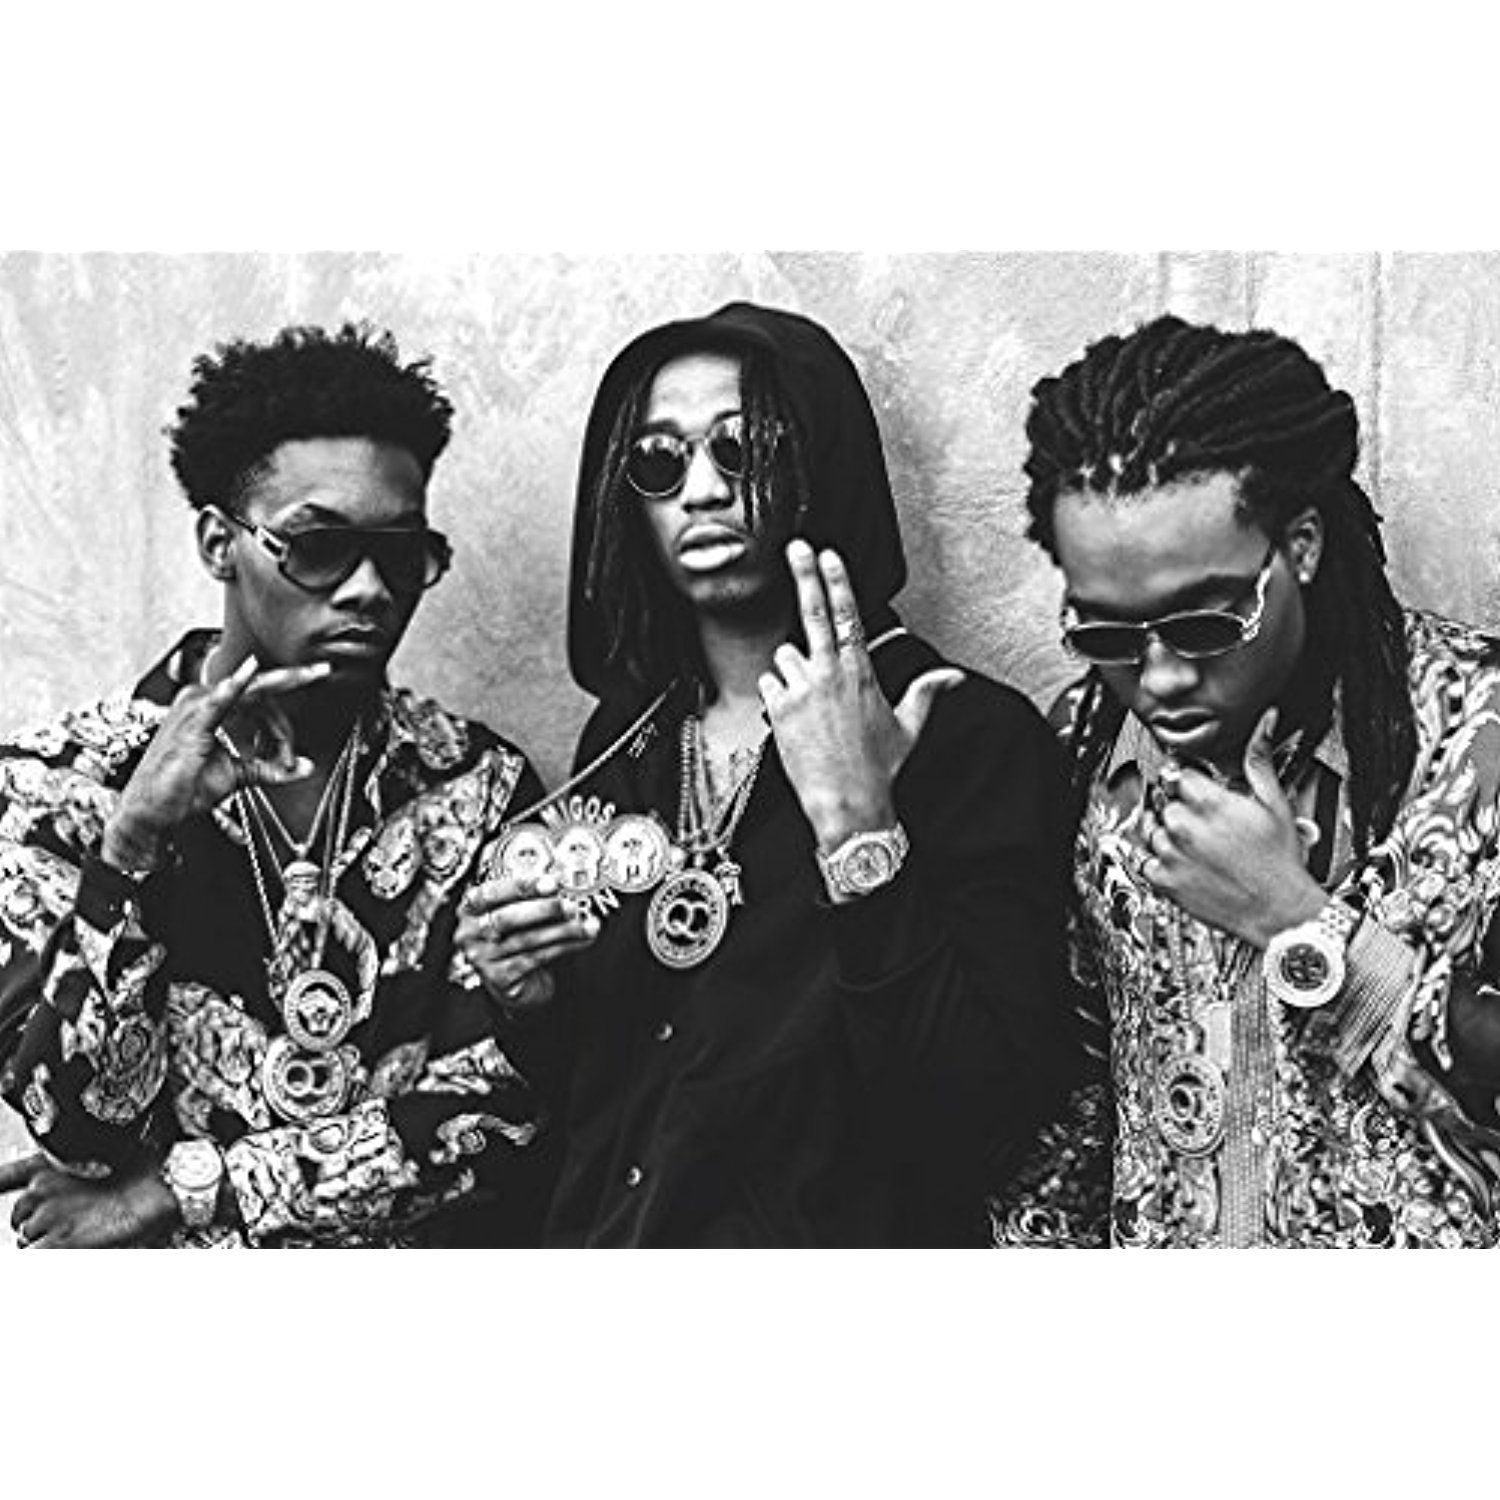 MIGOS - Hip hop, trap - Quavo, Offset and Takeoff - Poster 47in x